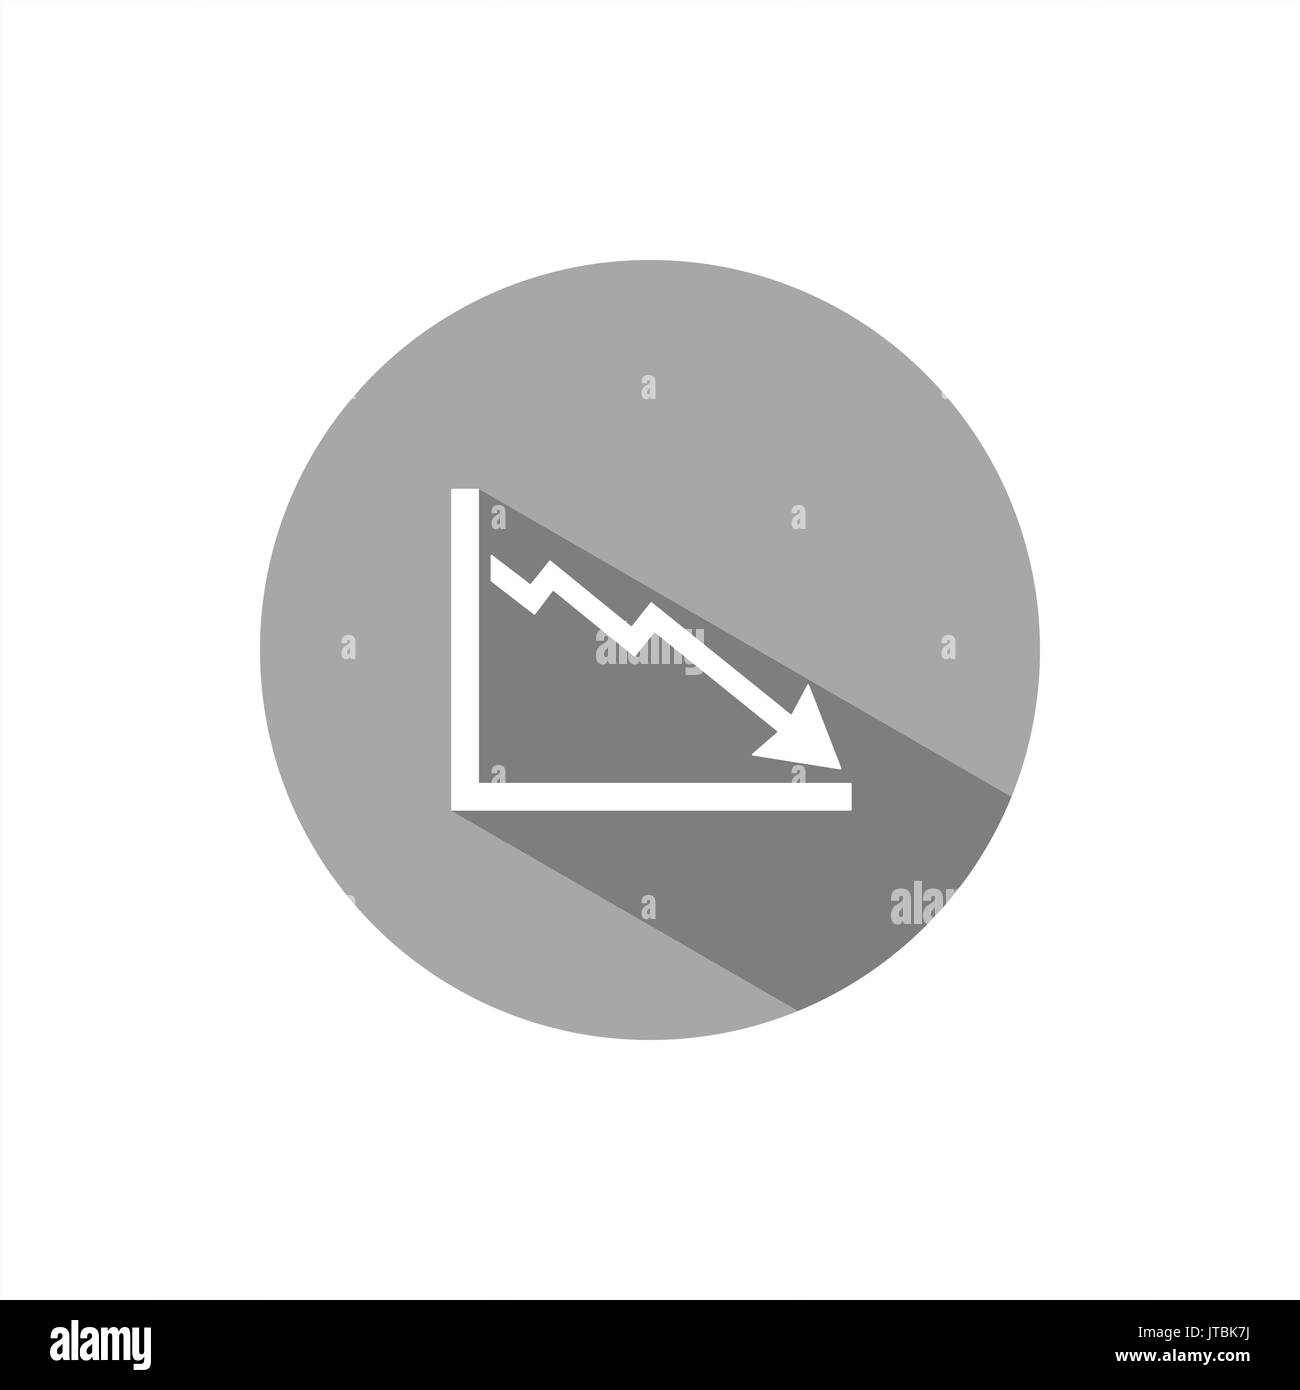 Bankruptcy chart icon with shade on grey button - Stock Image